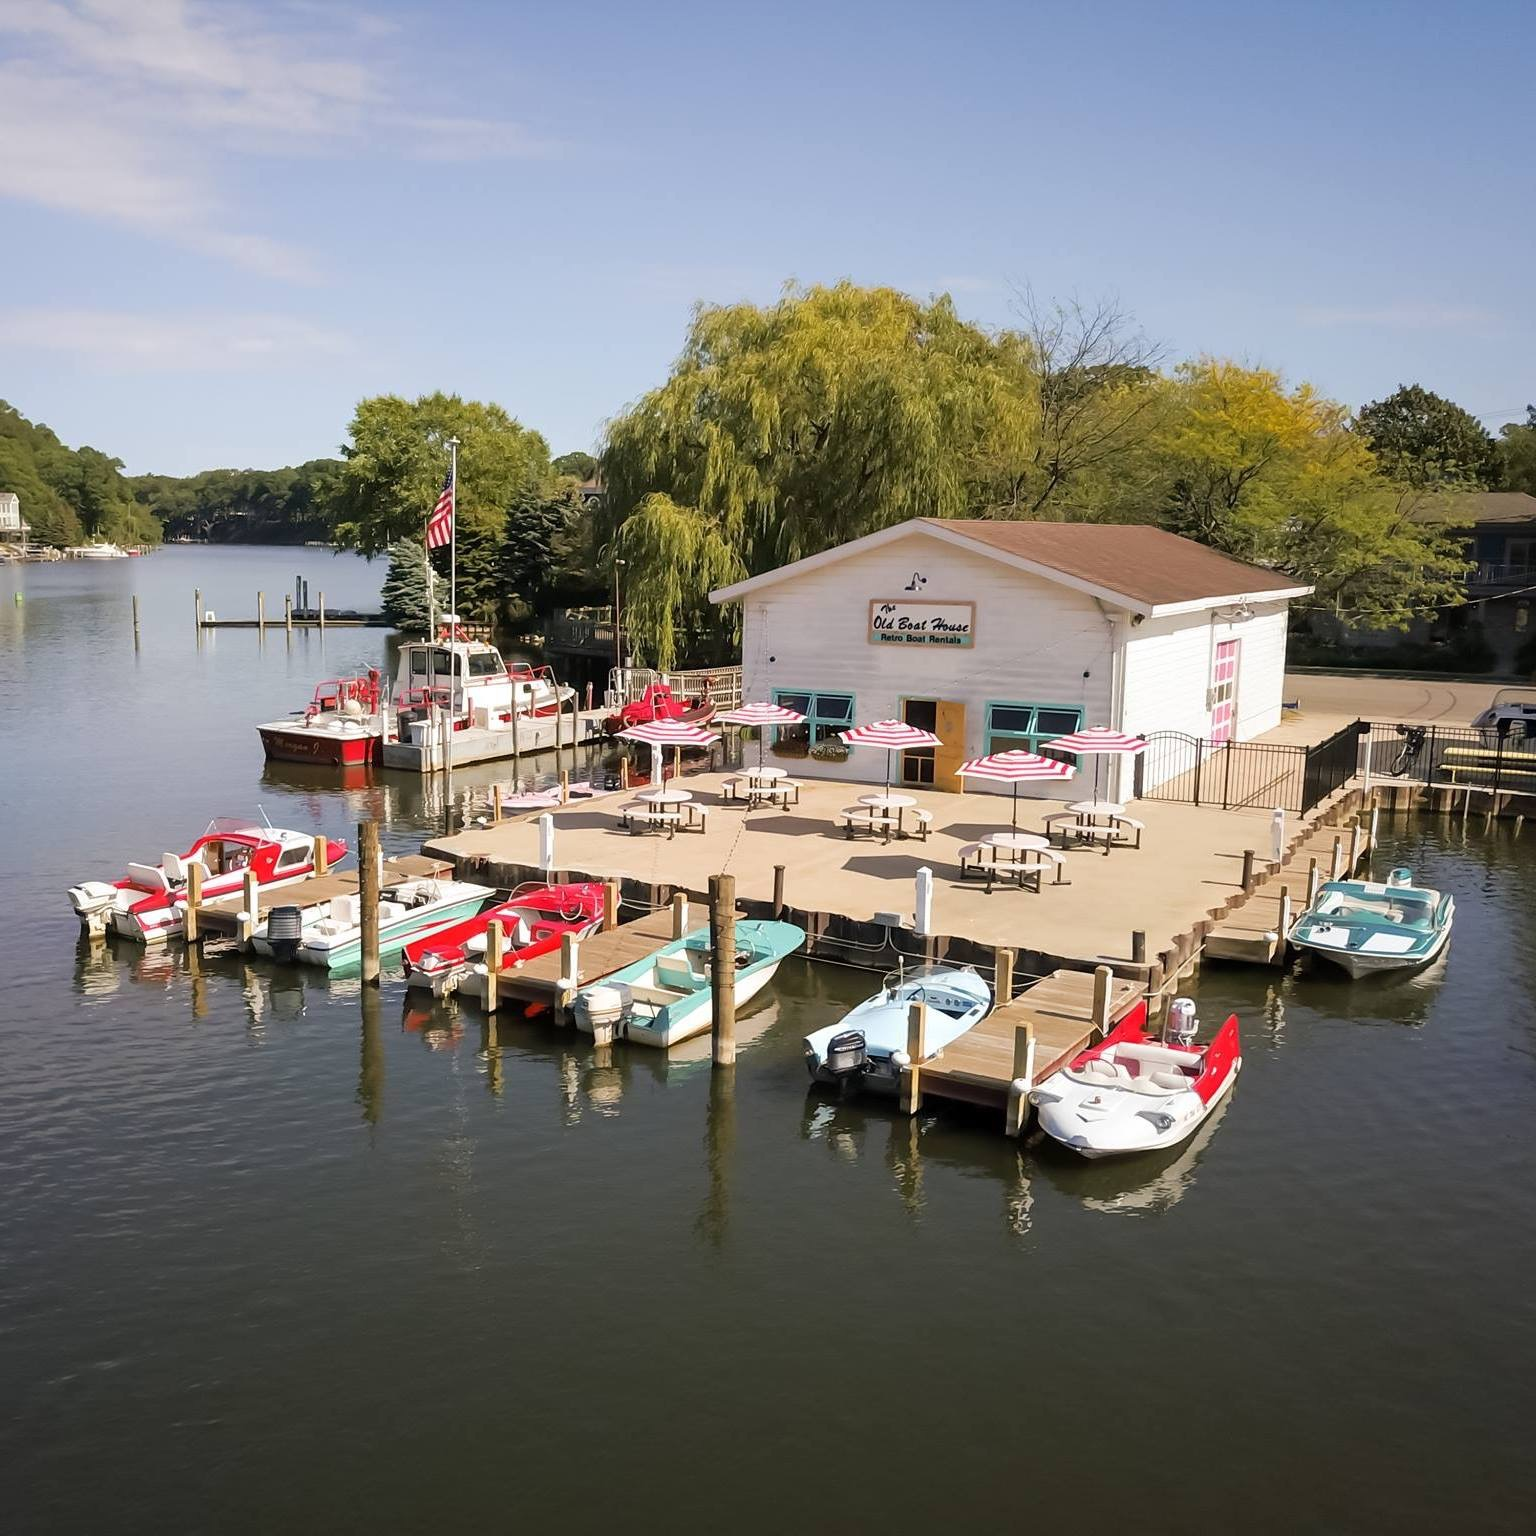 The Old Boat House with Retro Boats for Rent in Saugatuck Michigan